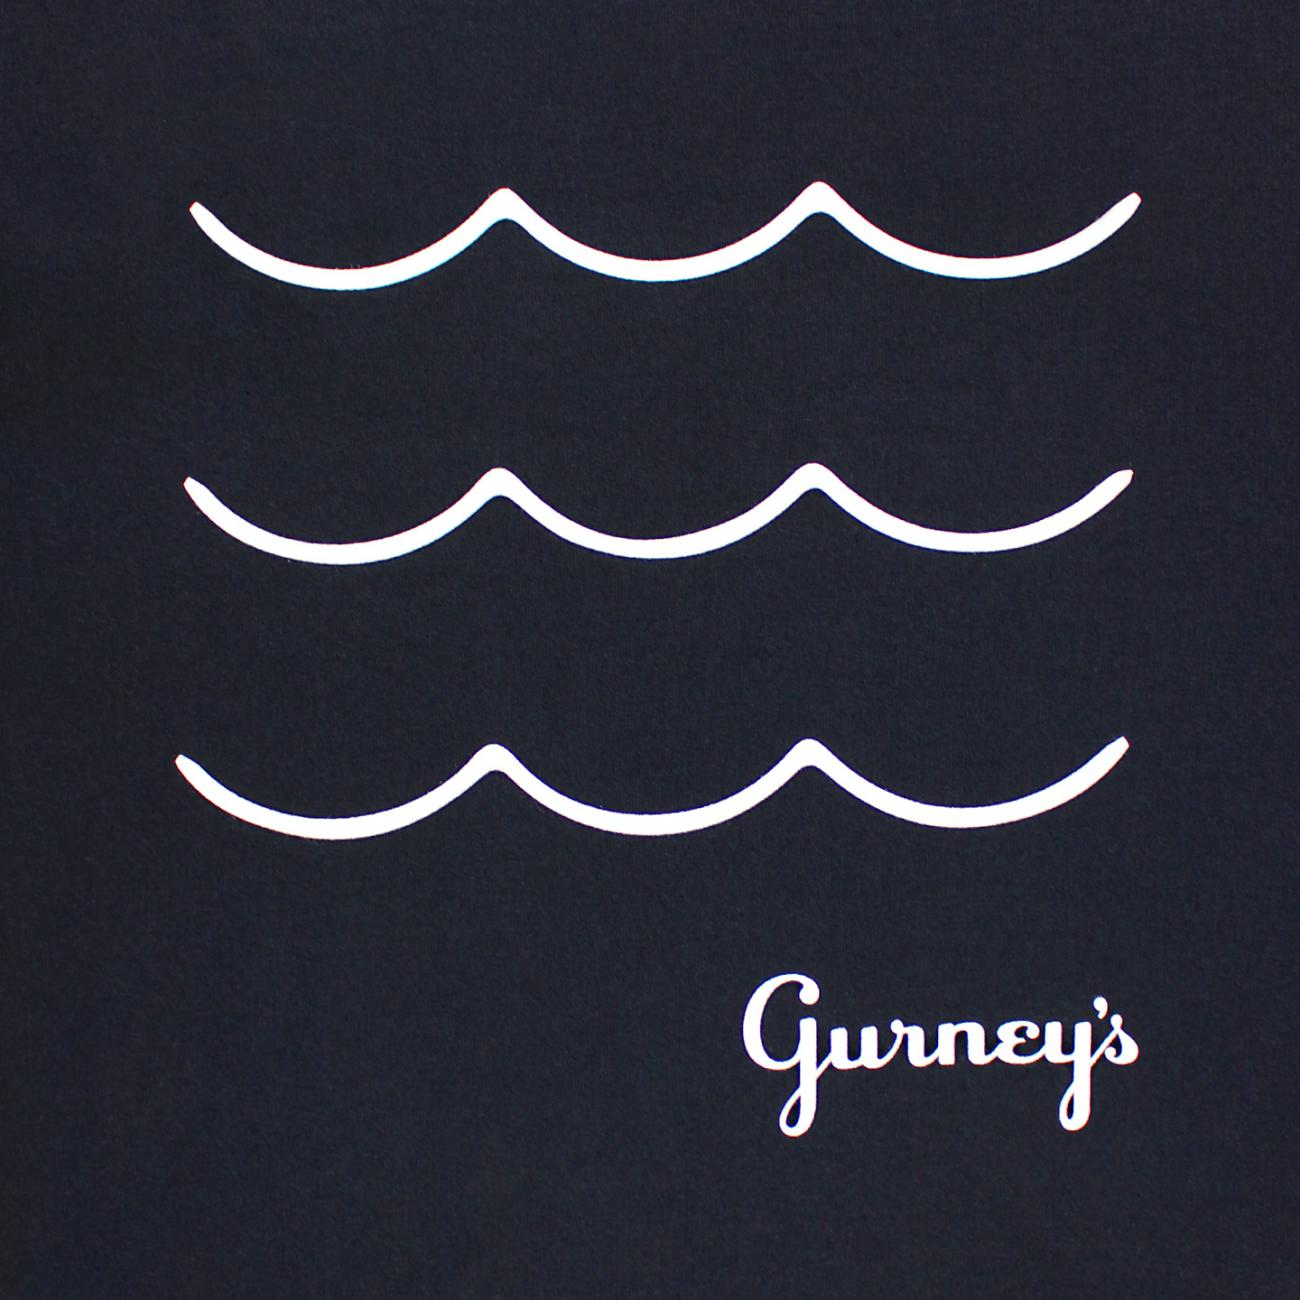 Gurney's Wave screened across chest navy